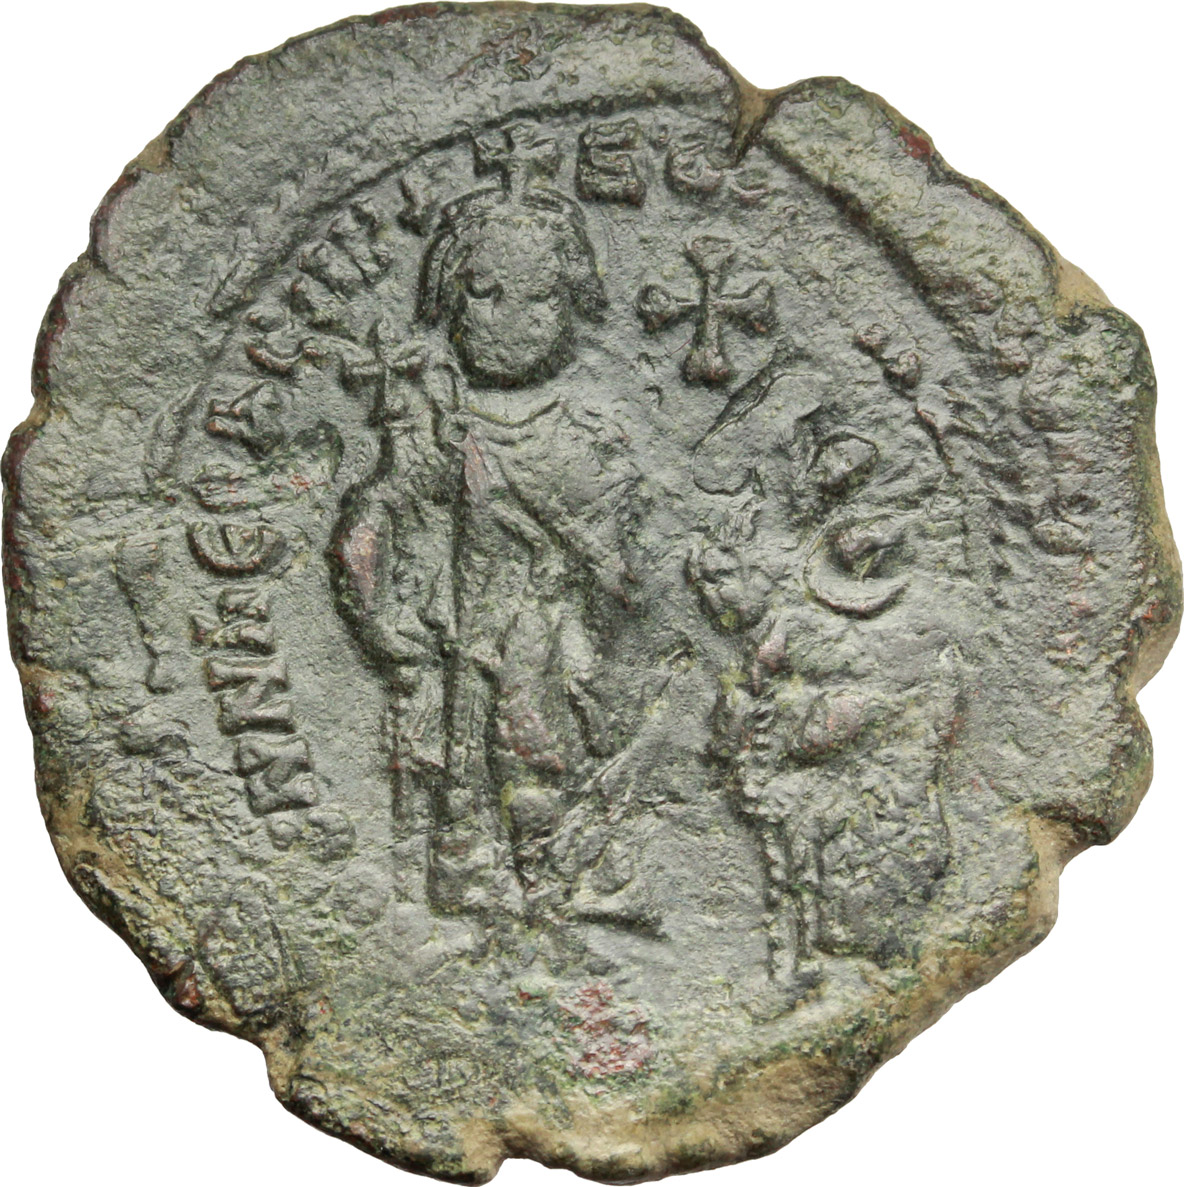 D/ Heraclius, with Heraclius Constantine (610-641).  AE Follis, Constantinople mint. Countermarked. Obv. dd NN hERACLIЧS ET hERA CONST PP A. Heraclius, on left, and Heraclius Constantine, on right, standing facing, each holding long cross; cross above. Rev. Large M; Christogram above, A/N/N/O- [...] across field; below, Γ; in exergue, CON. Sear 805. AE. g. 11.85  mm. 33.50   A nice example. Earthy green patina. Good VF.